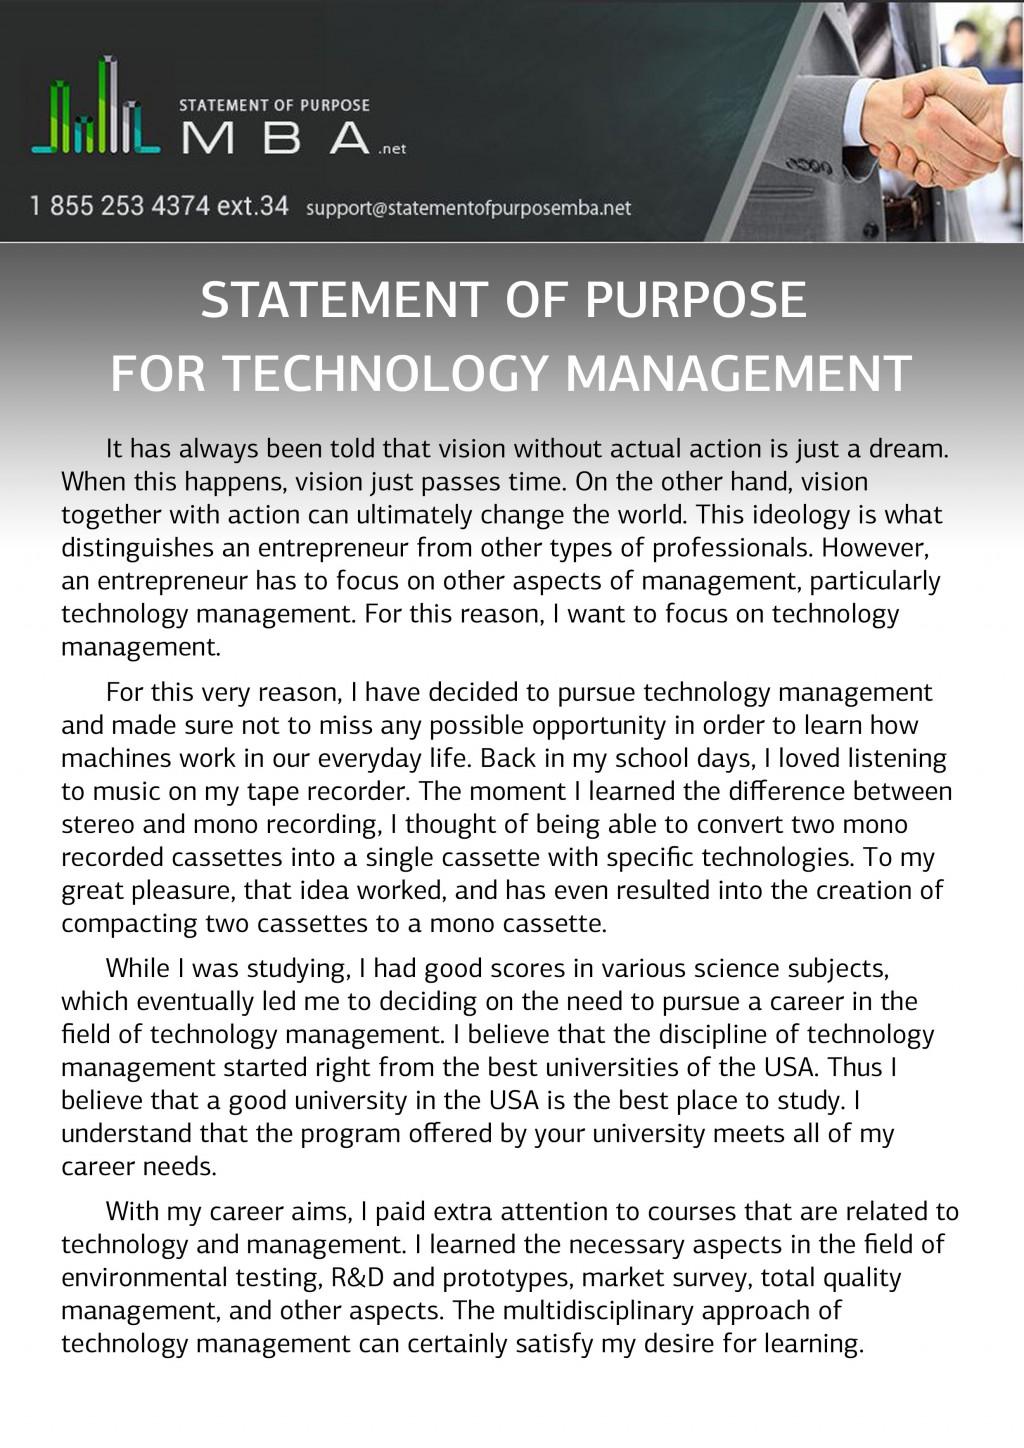 012 Columbia Mba Essay On Goals Career Vision Executive Embas Statement Of Purpose For Technology Management S Mit Astounding Questions Analysis Formatting Large